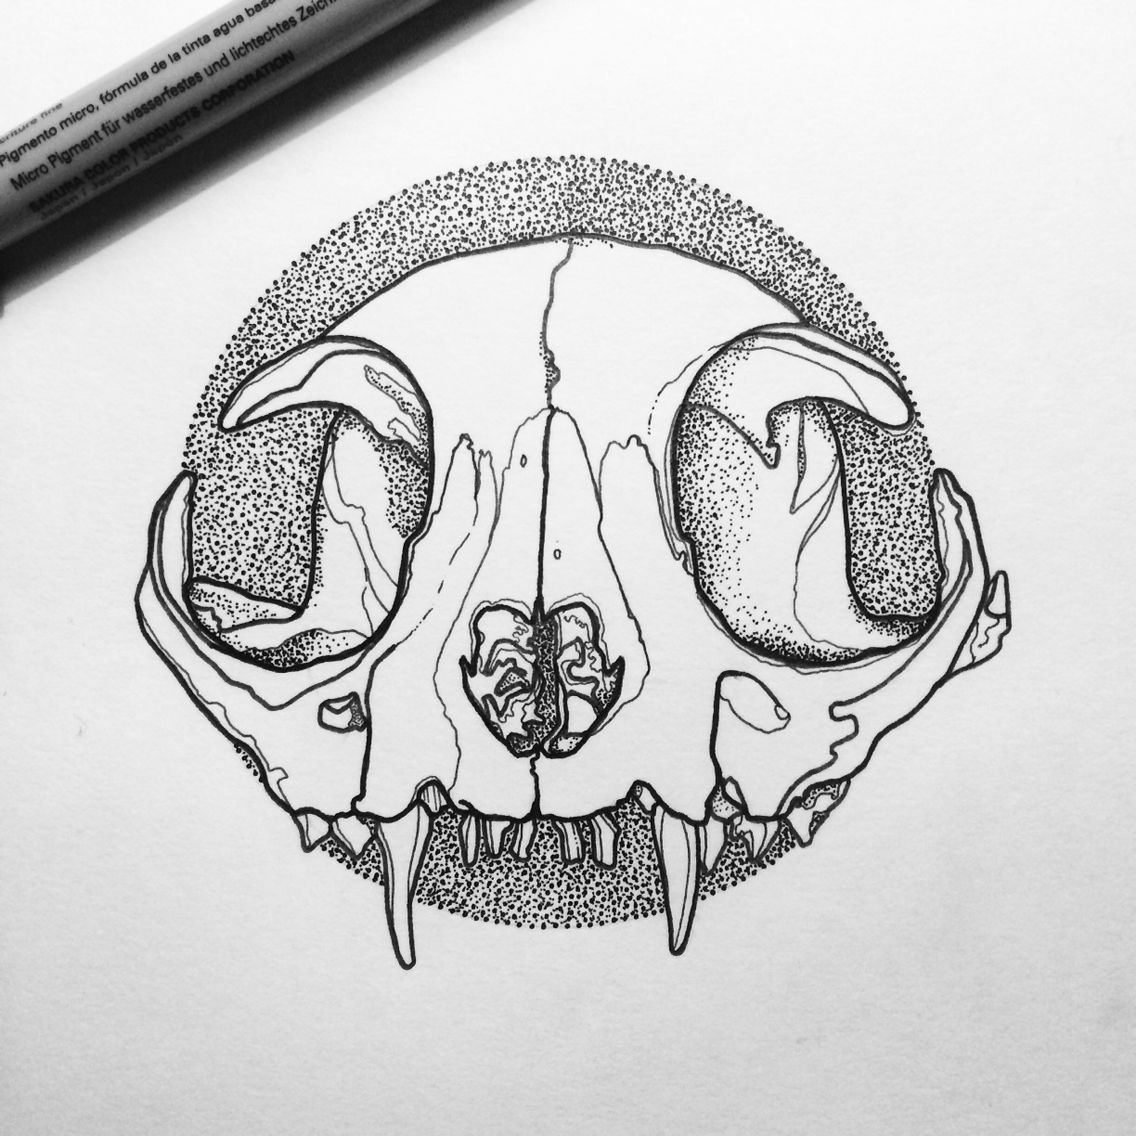 Cat Skull Line Linework Design Designer Graphic Graphics Graphicdesign Sketch Draw Drawing Illustrate Illustr Cat Skull Tattoo Cat Skull Skull Art